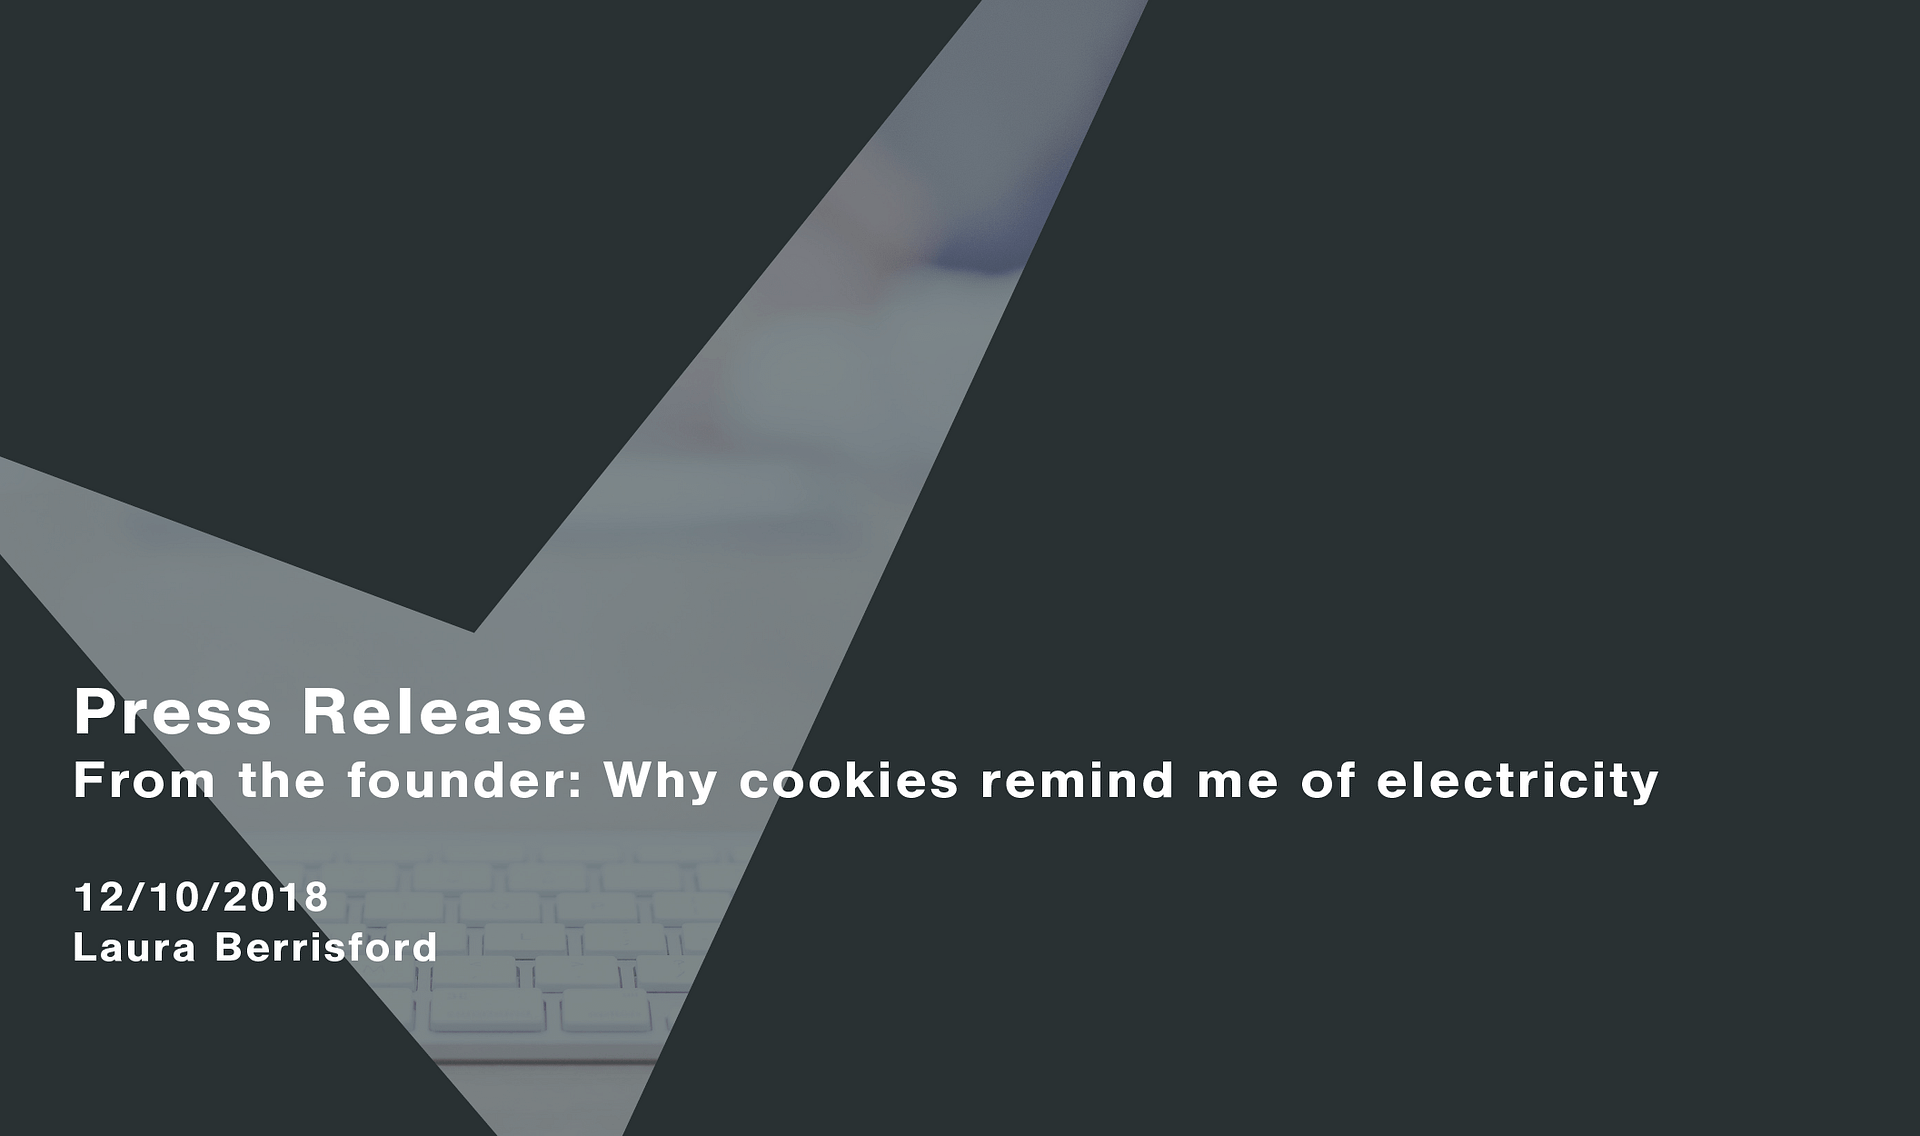 From the founder: why cookies remind me of electricity Cassie personal information & consent management